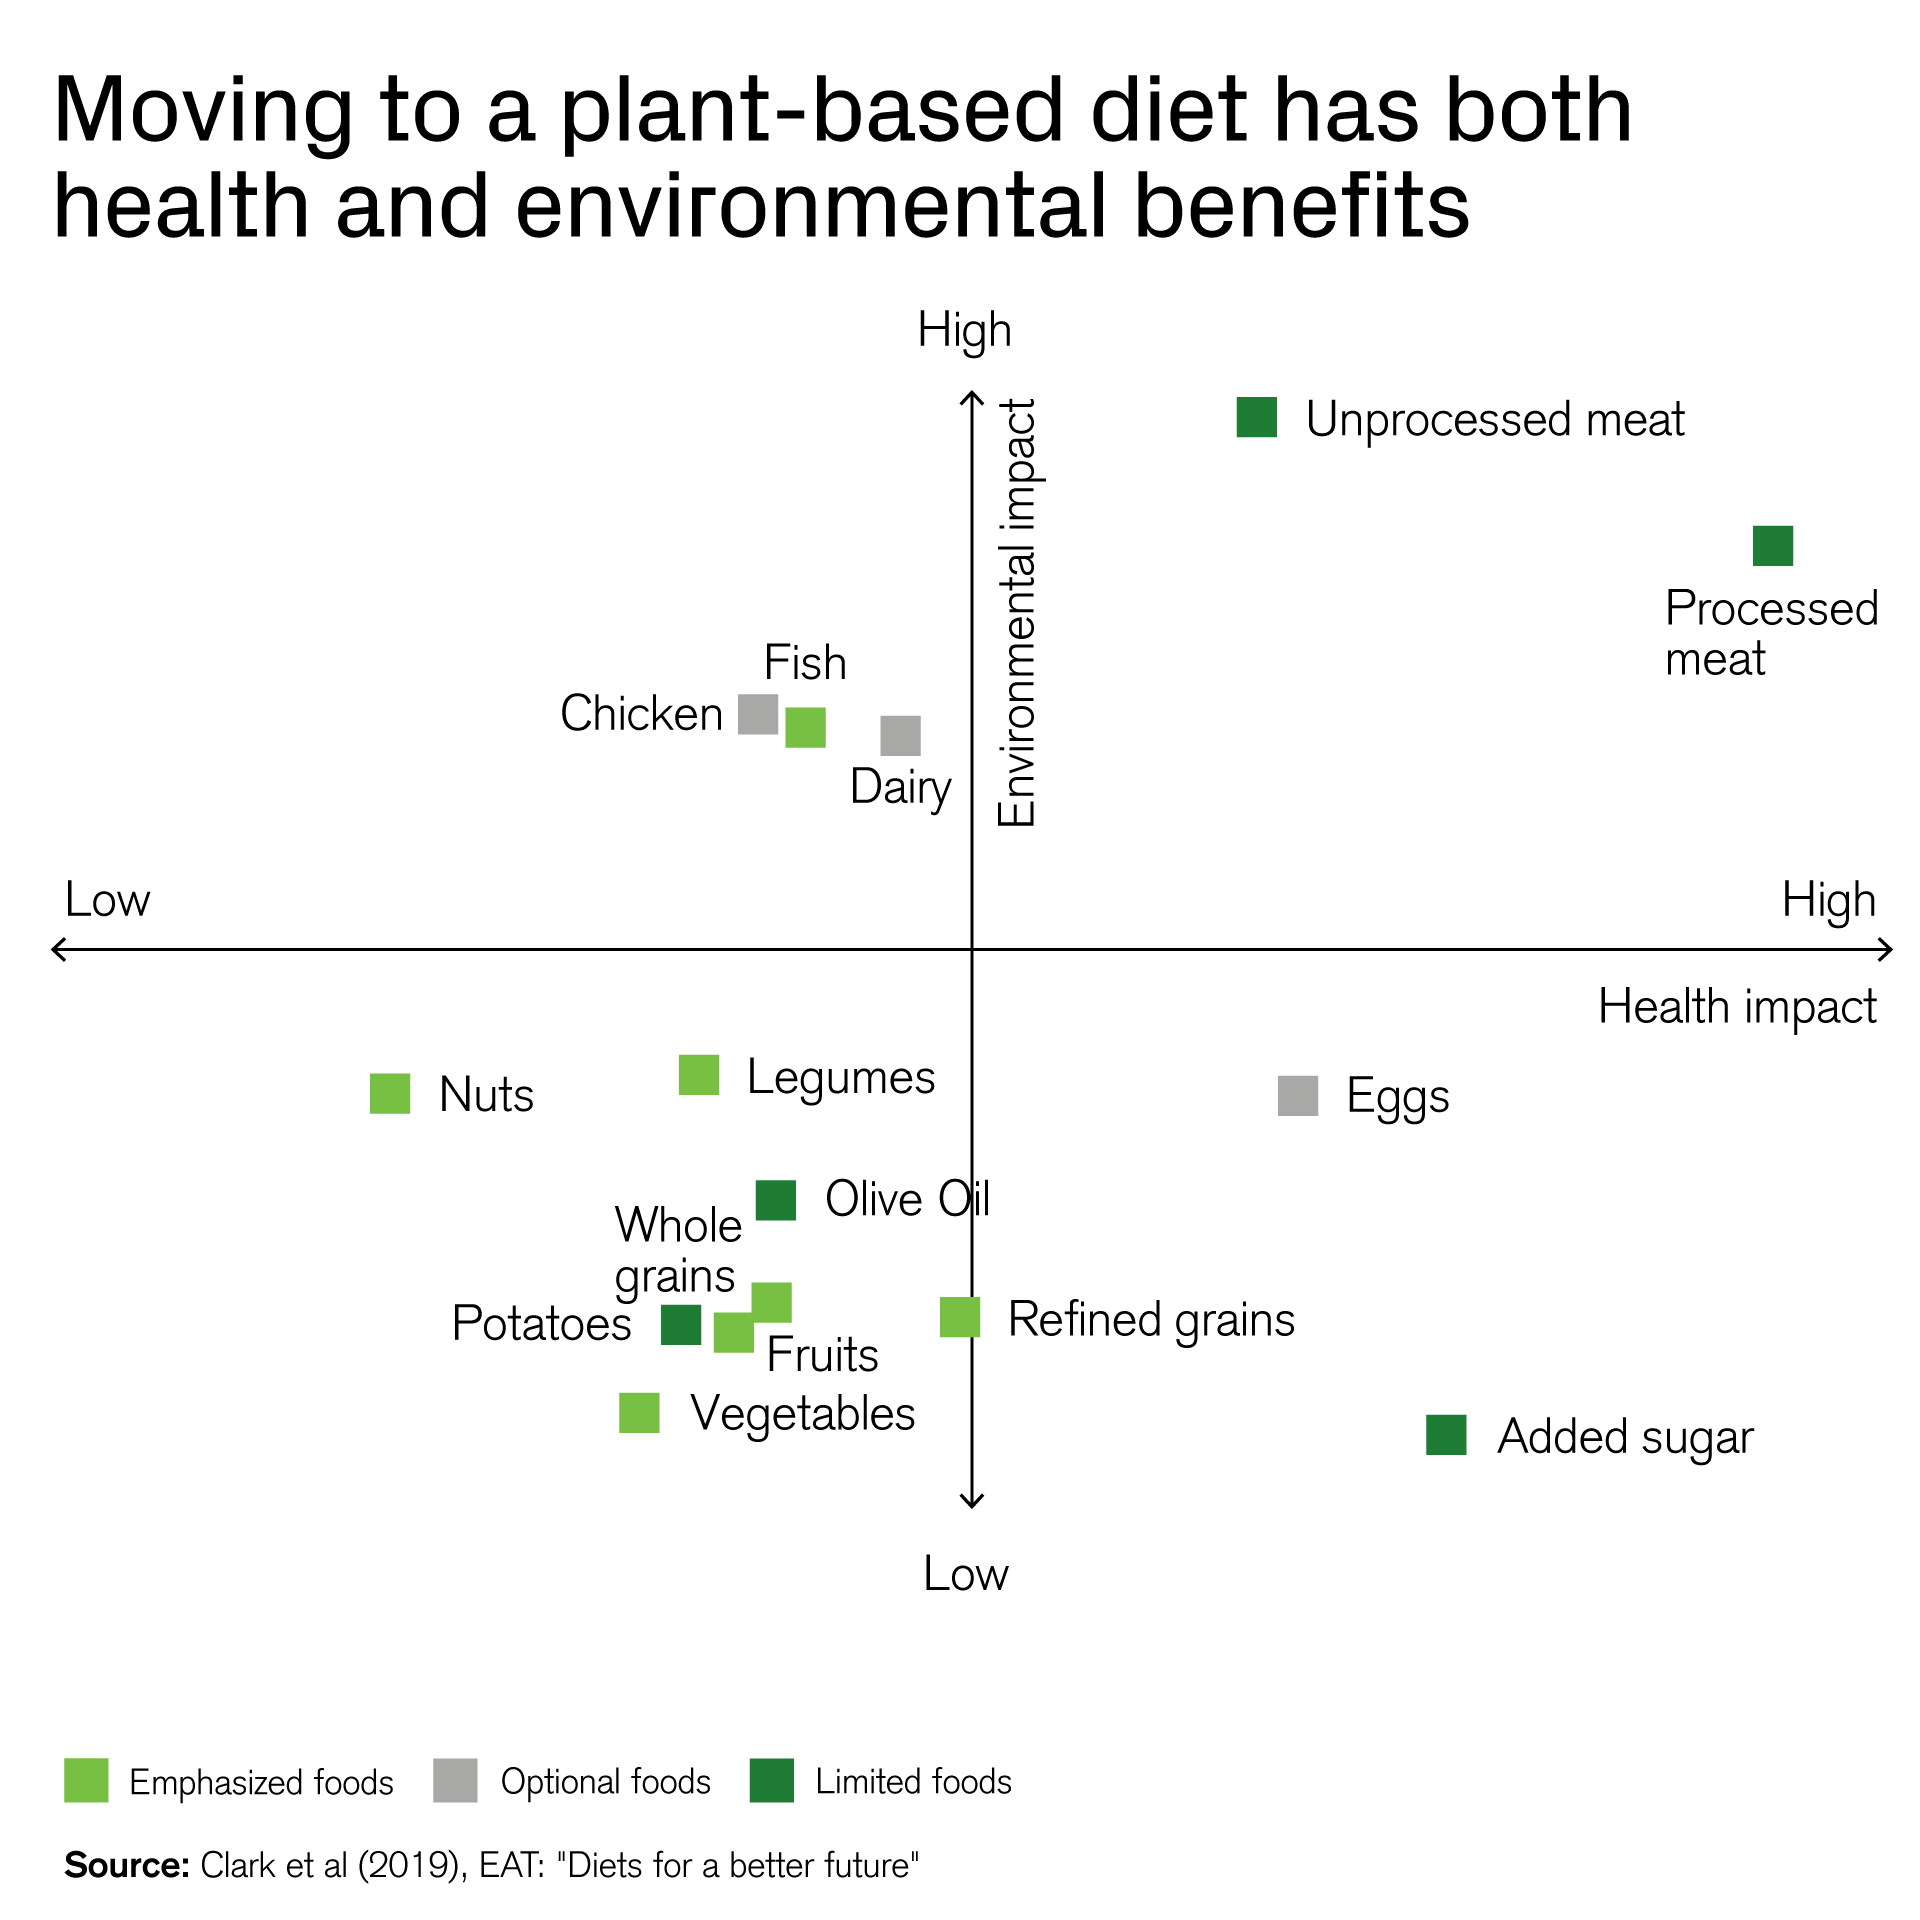 Moving to a plant-based diet has both health and environmental benefits